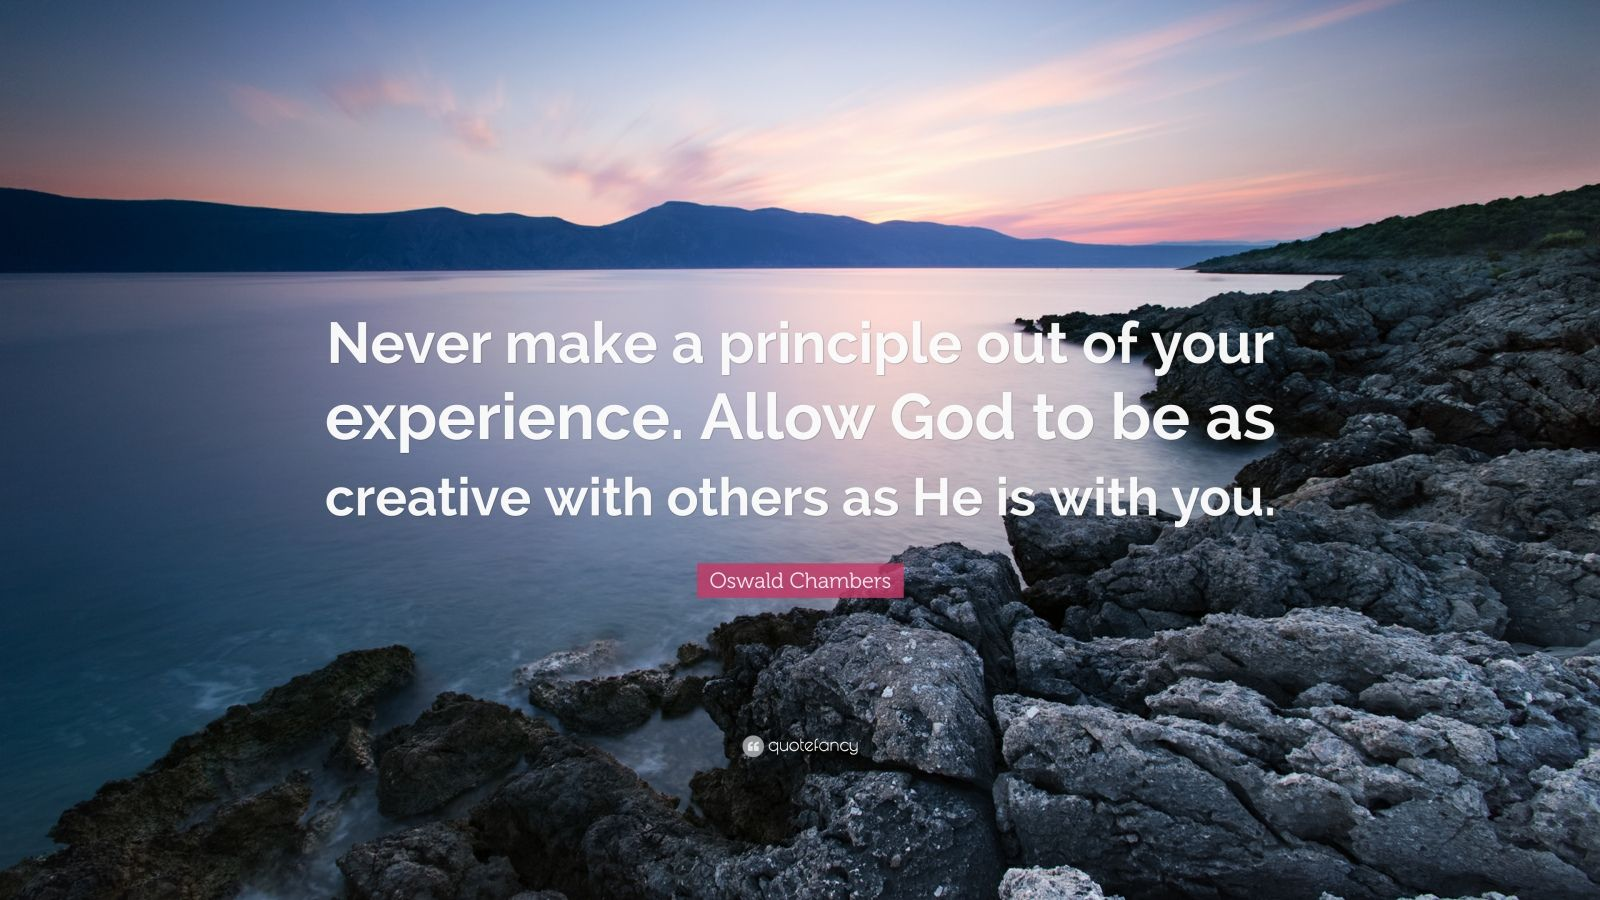 """Oswald Chambers Quote: """"Never make a principle out of your experience. Allow God to be as creative with others as He is with you."""""""